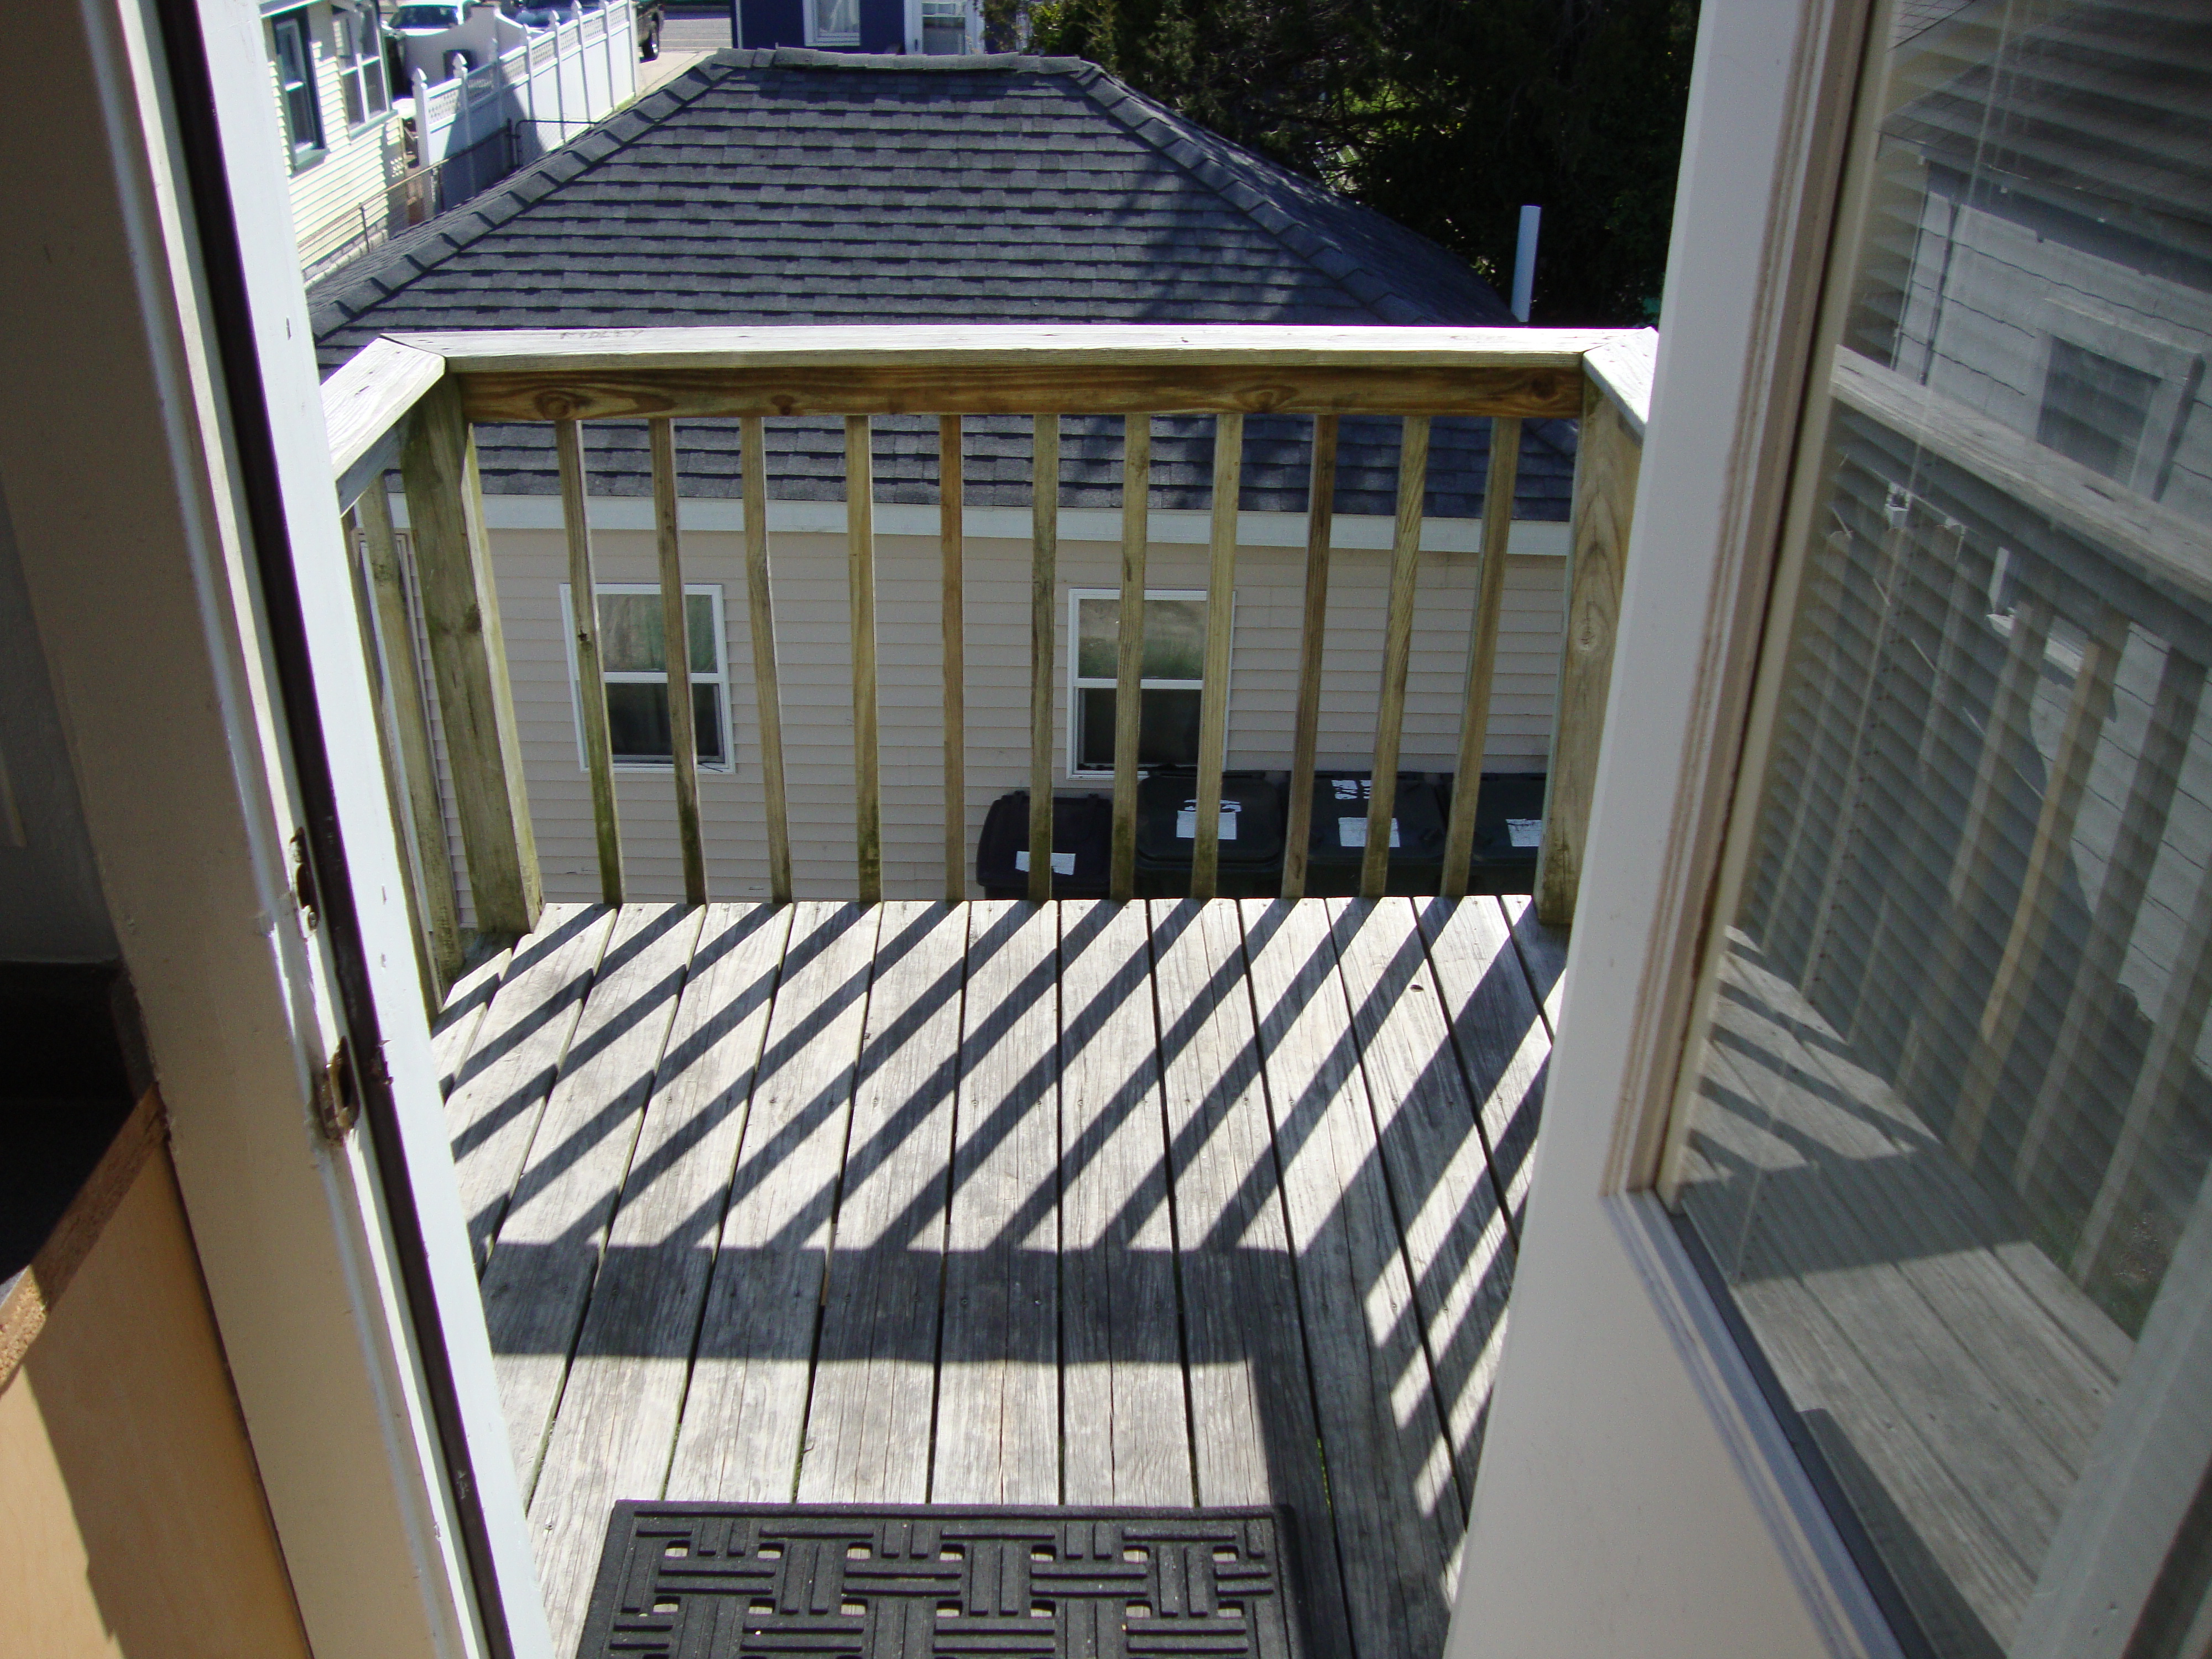 Wildwood nj senior week and 43783 find rentals for 18 floor balcony